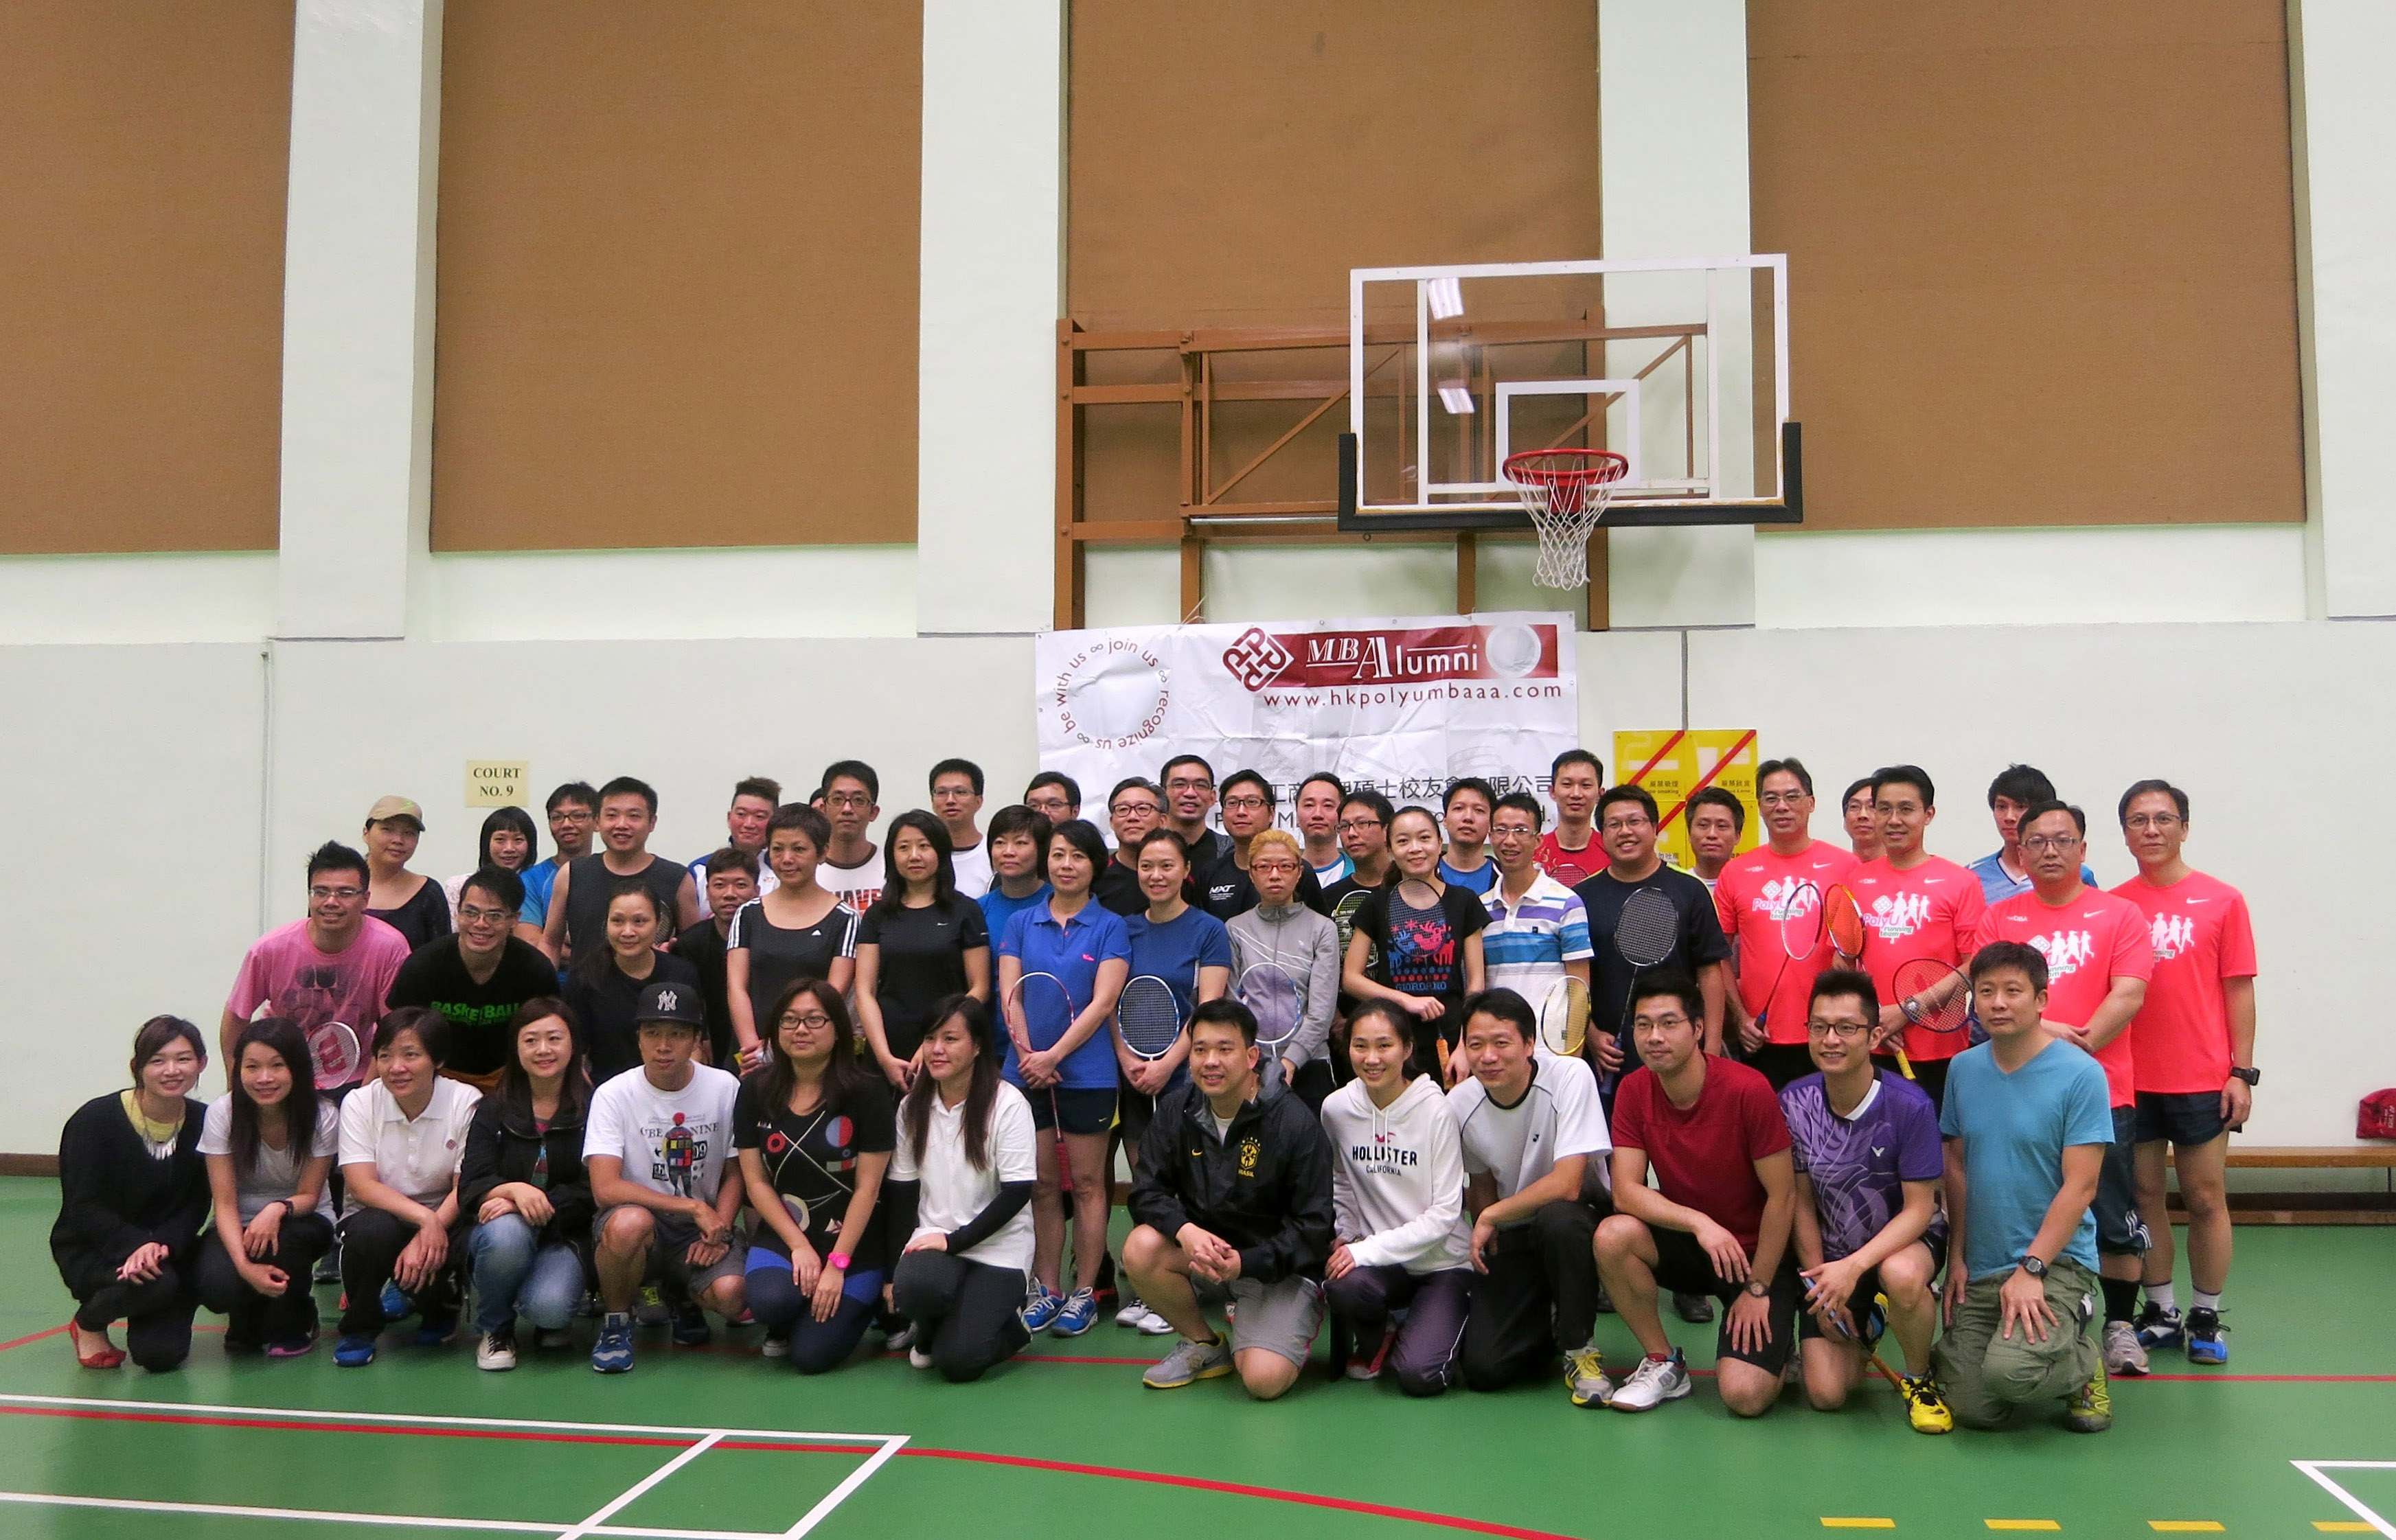 PolyU DBAAA and MBAAA Badminton Tournament at PolyU – 30/3/2014